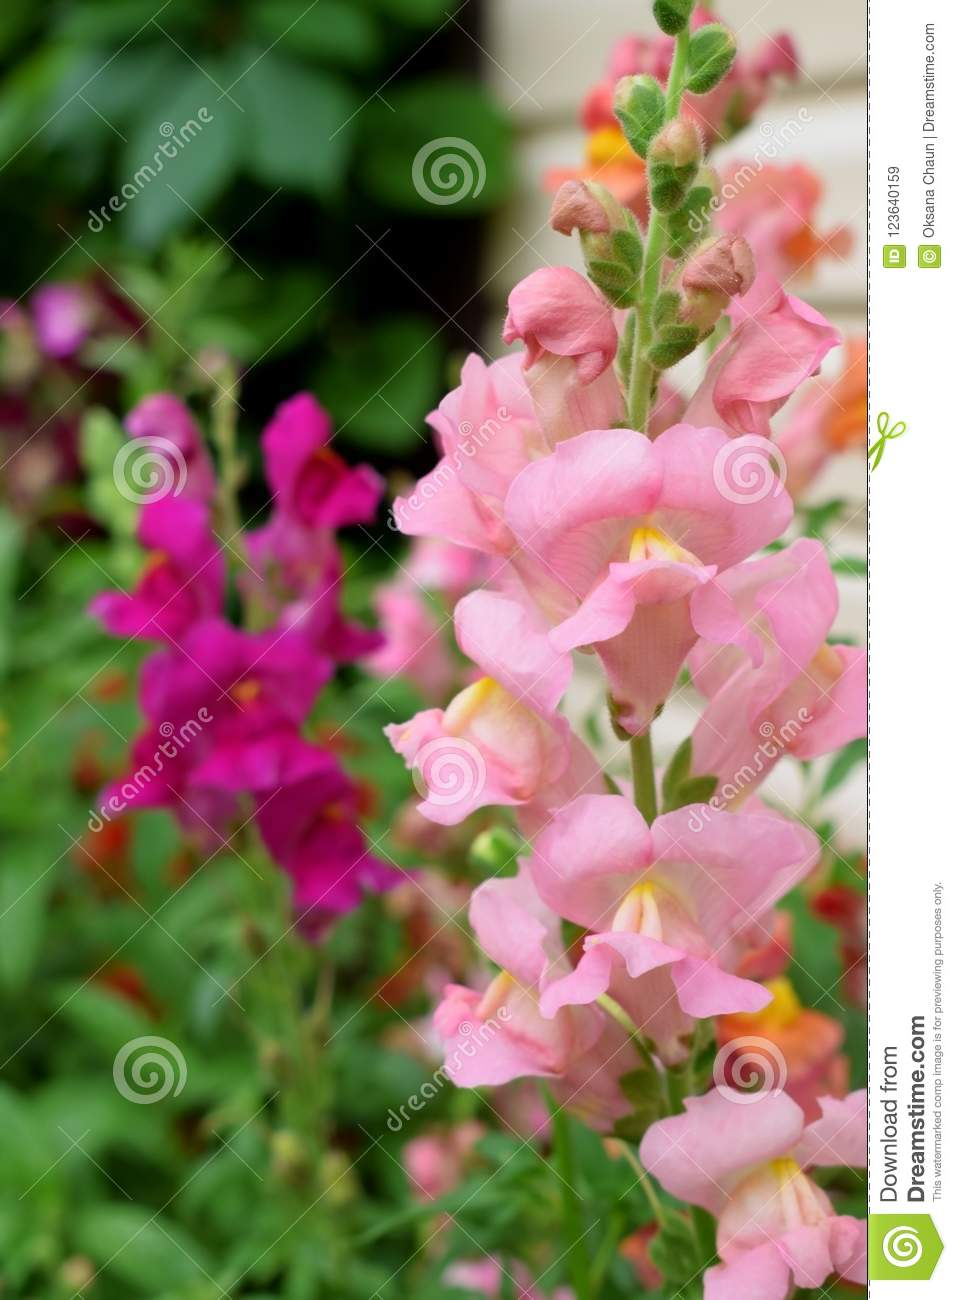 Pink Snapdragon Flowers Stock Image Image Of Pink Care 123640159